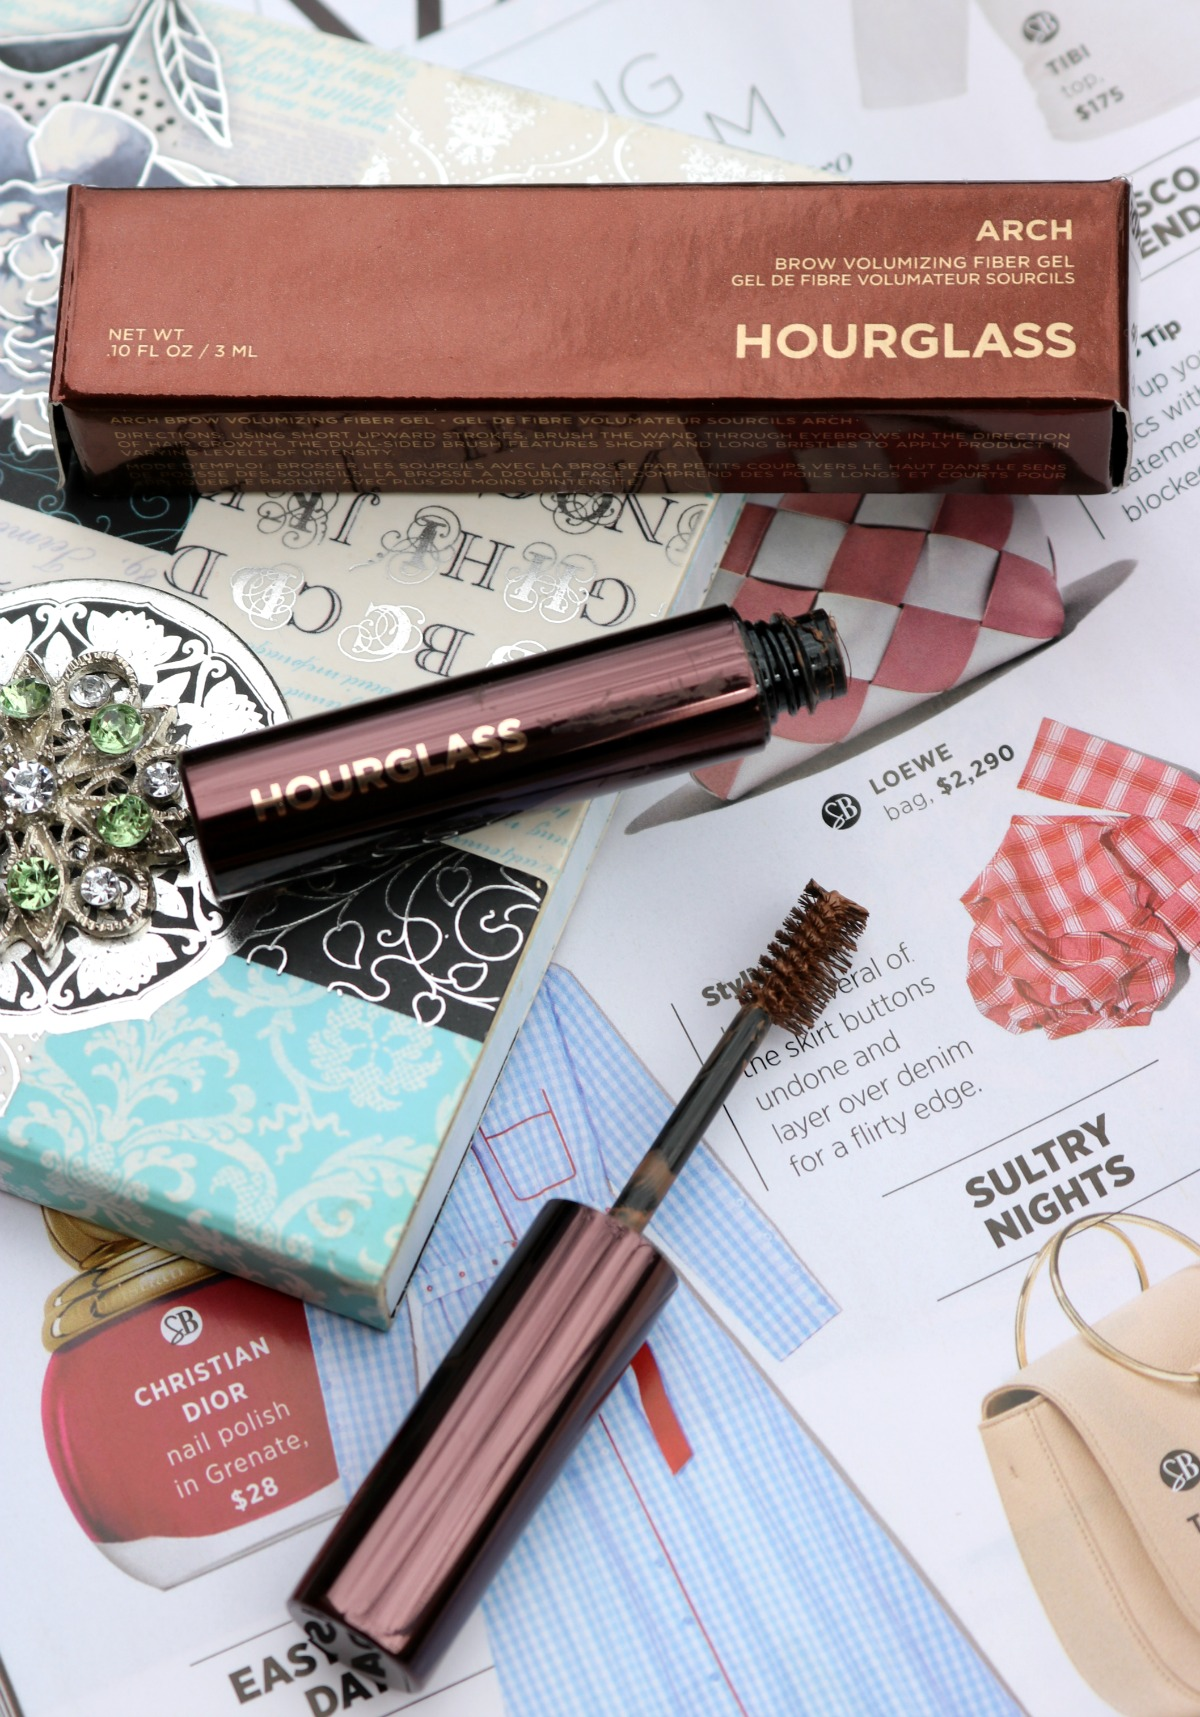 Hourglass Arch Brow Gel Review I Voluminizing Fiber Eyebrow Gel #CrueltyFree #Eyebrows